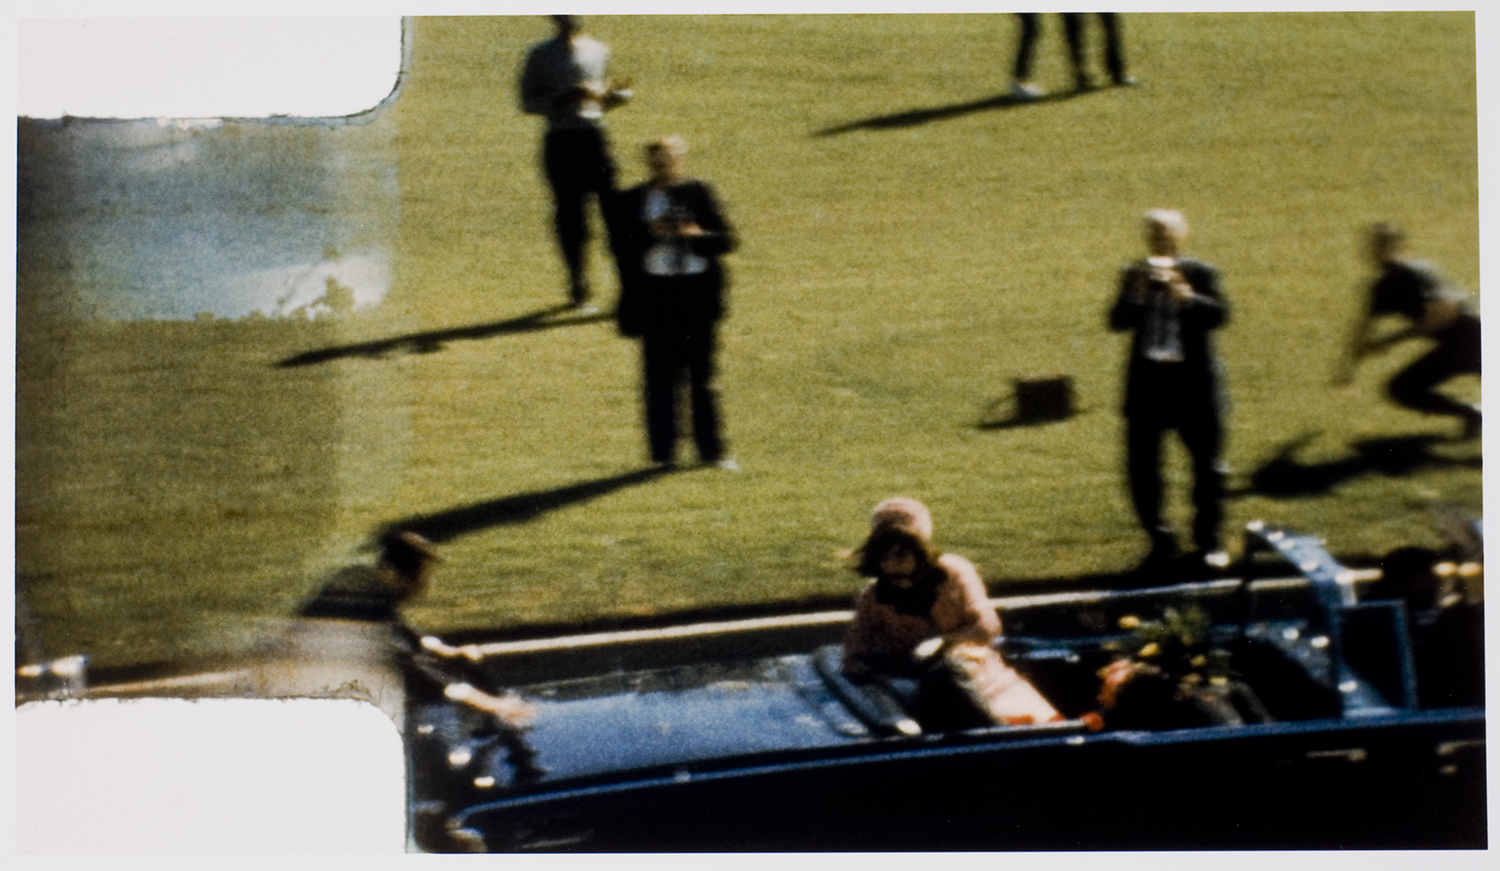 kennedy assassination Jfk files: here are the most interesting records on kennedy assassination, annotated check out some of the most fascinating documents in the trove of 2,900 files related to john f kennedy's.